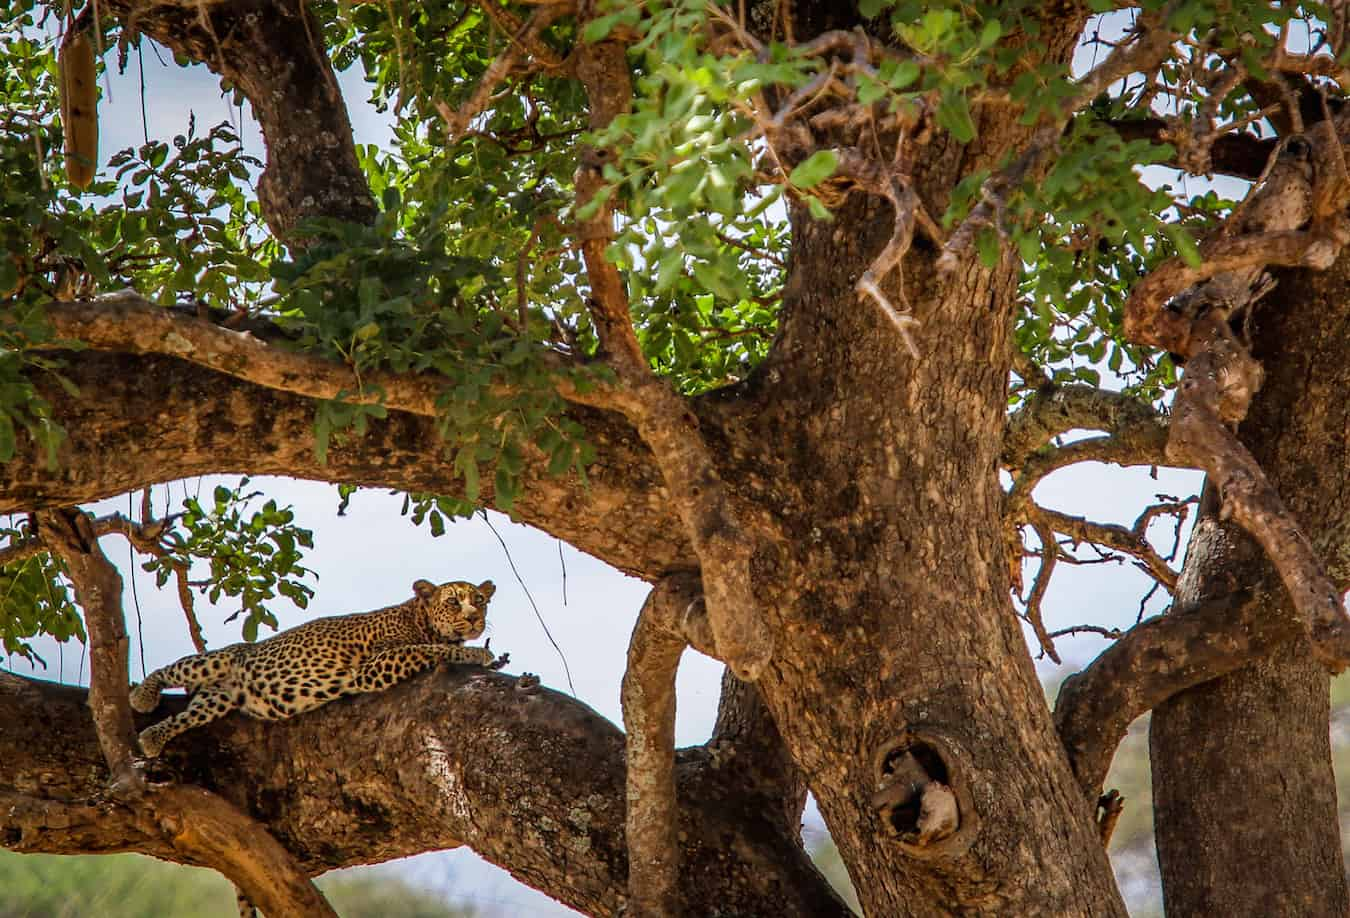 Leopard Spotted in Tarangire National Park, Tanzania